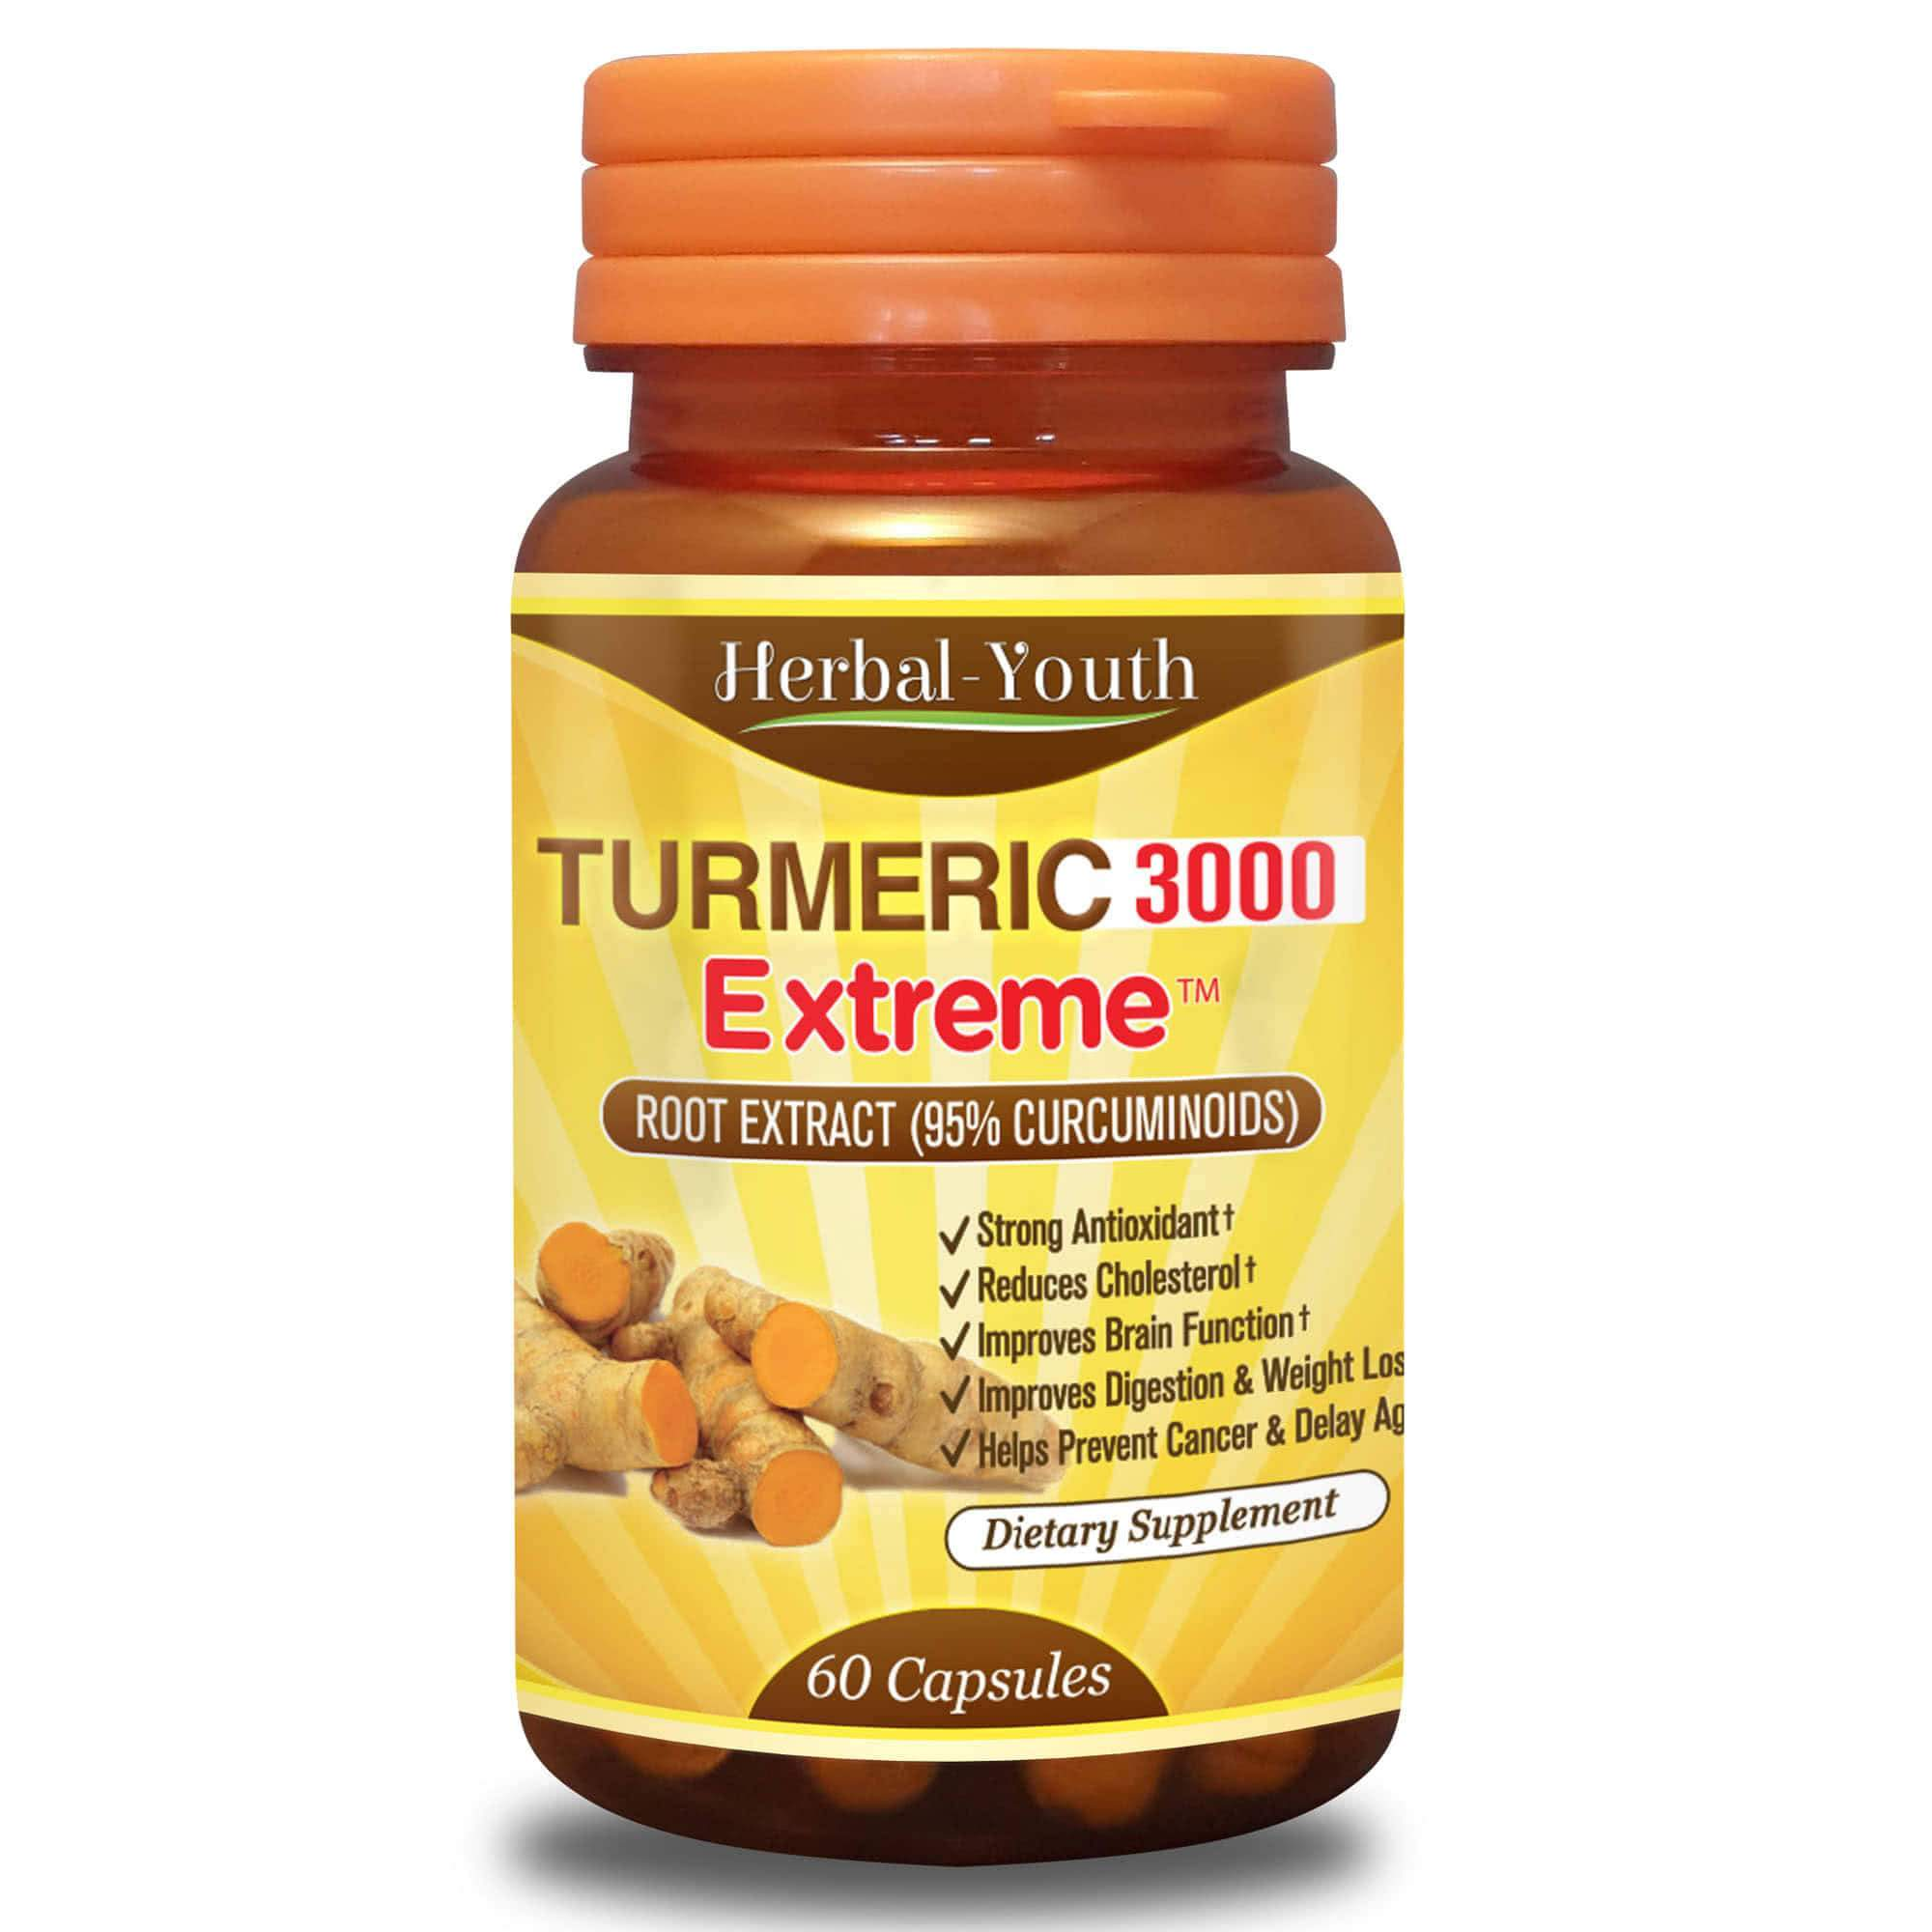 Turmeric 3000 Extreme - Supplements